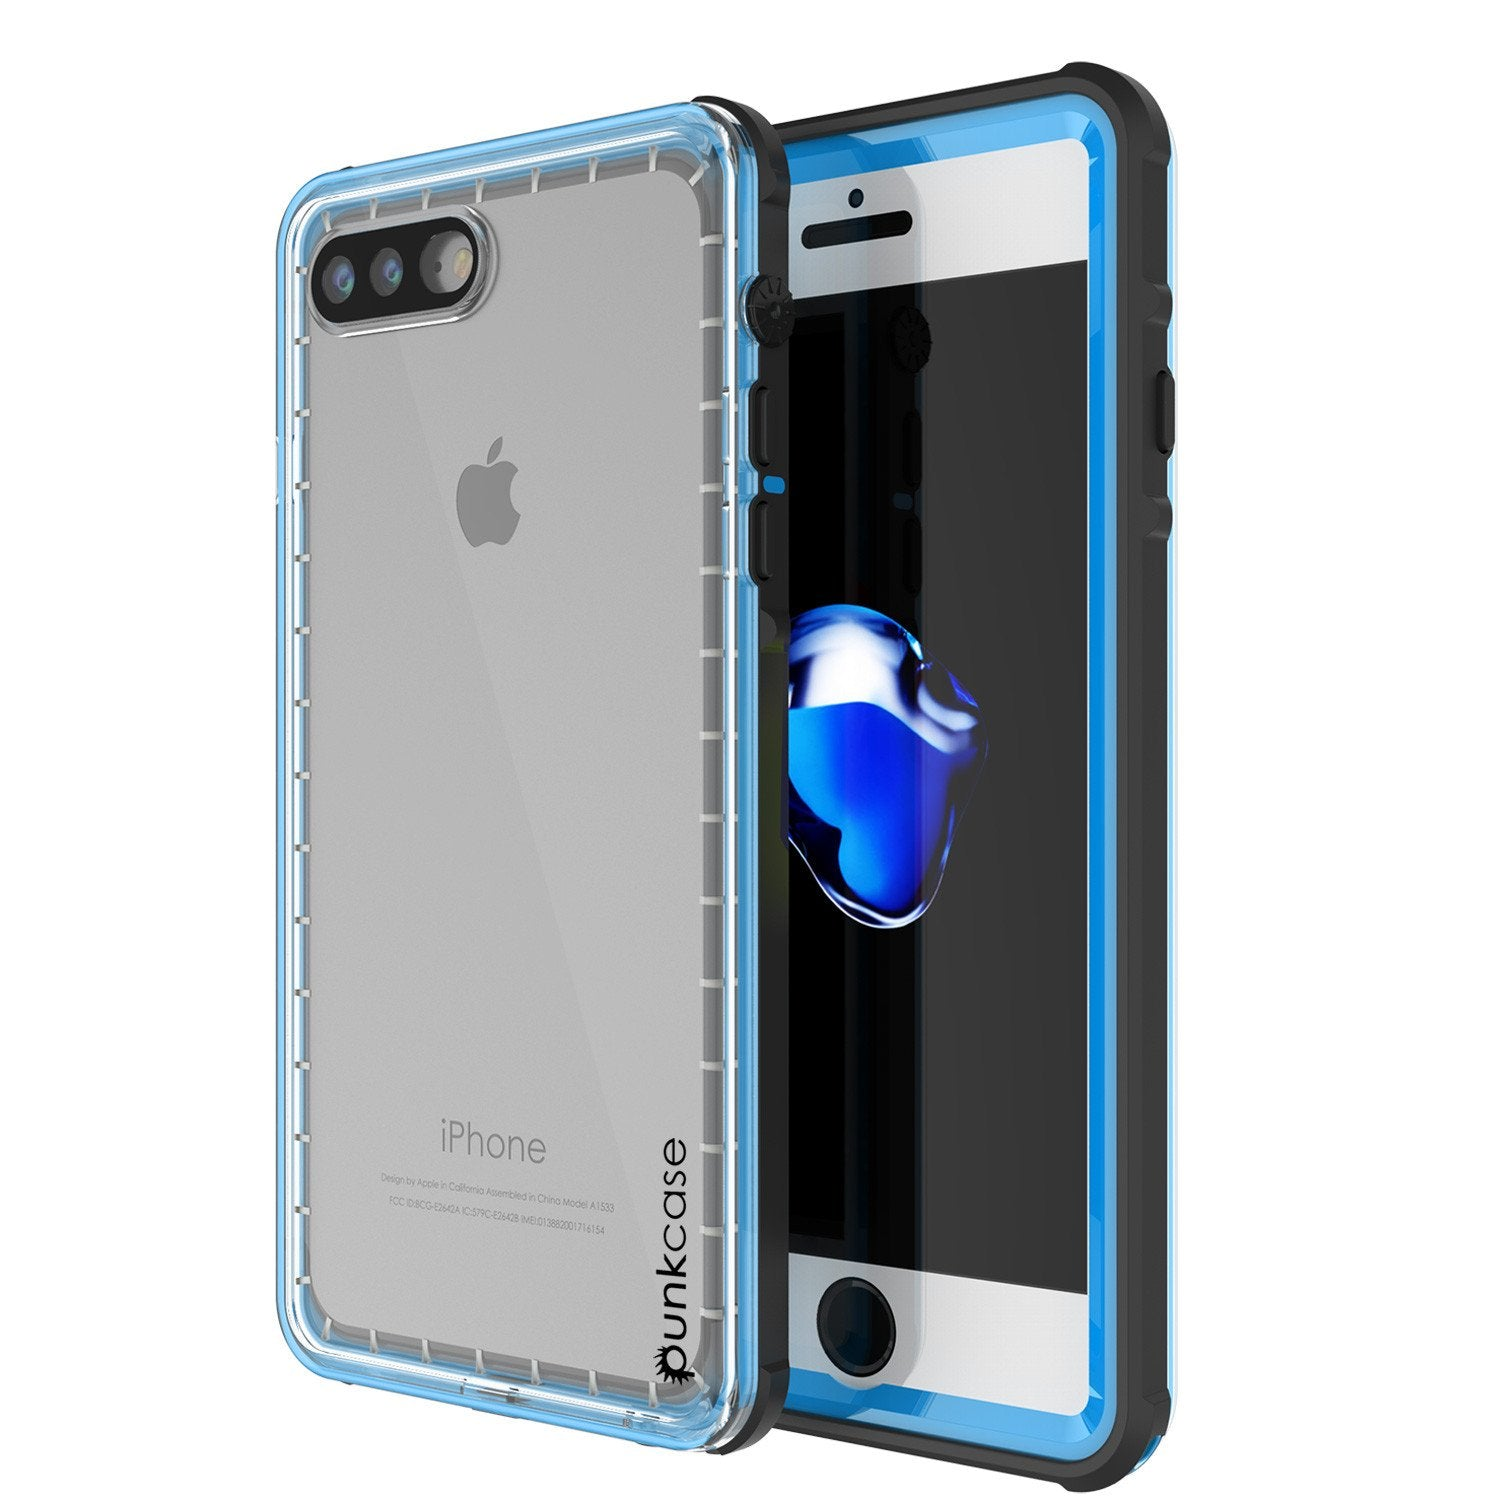 iPhone 8+ Plus Waterproof Case, PUNKcase CRYSTAL Light Blue  W/ Attached Screen Protector  | Warranty